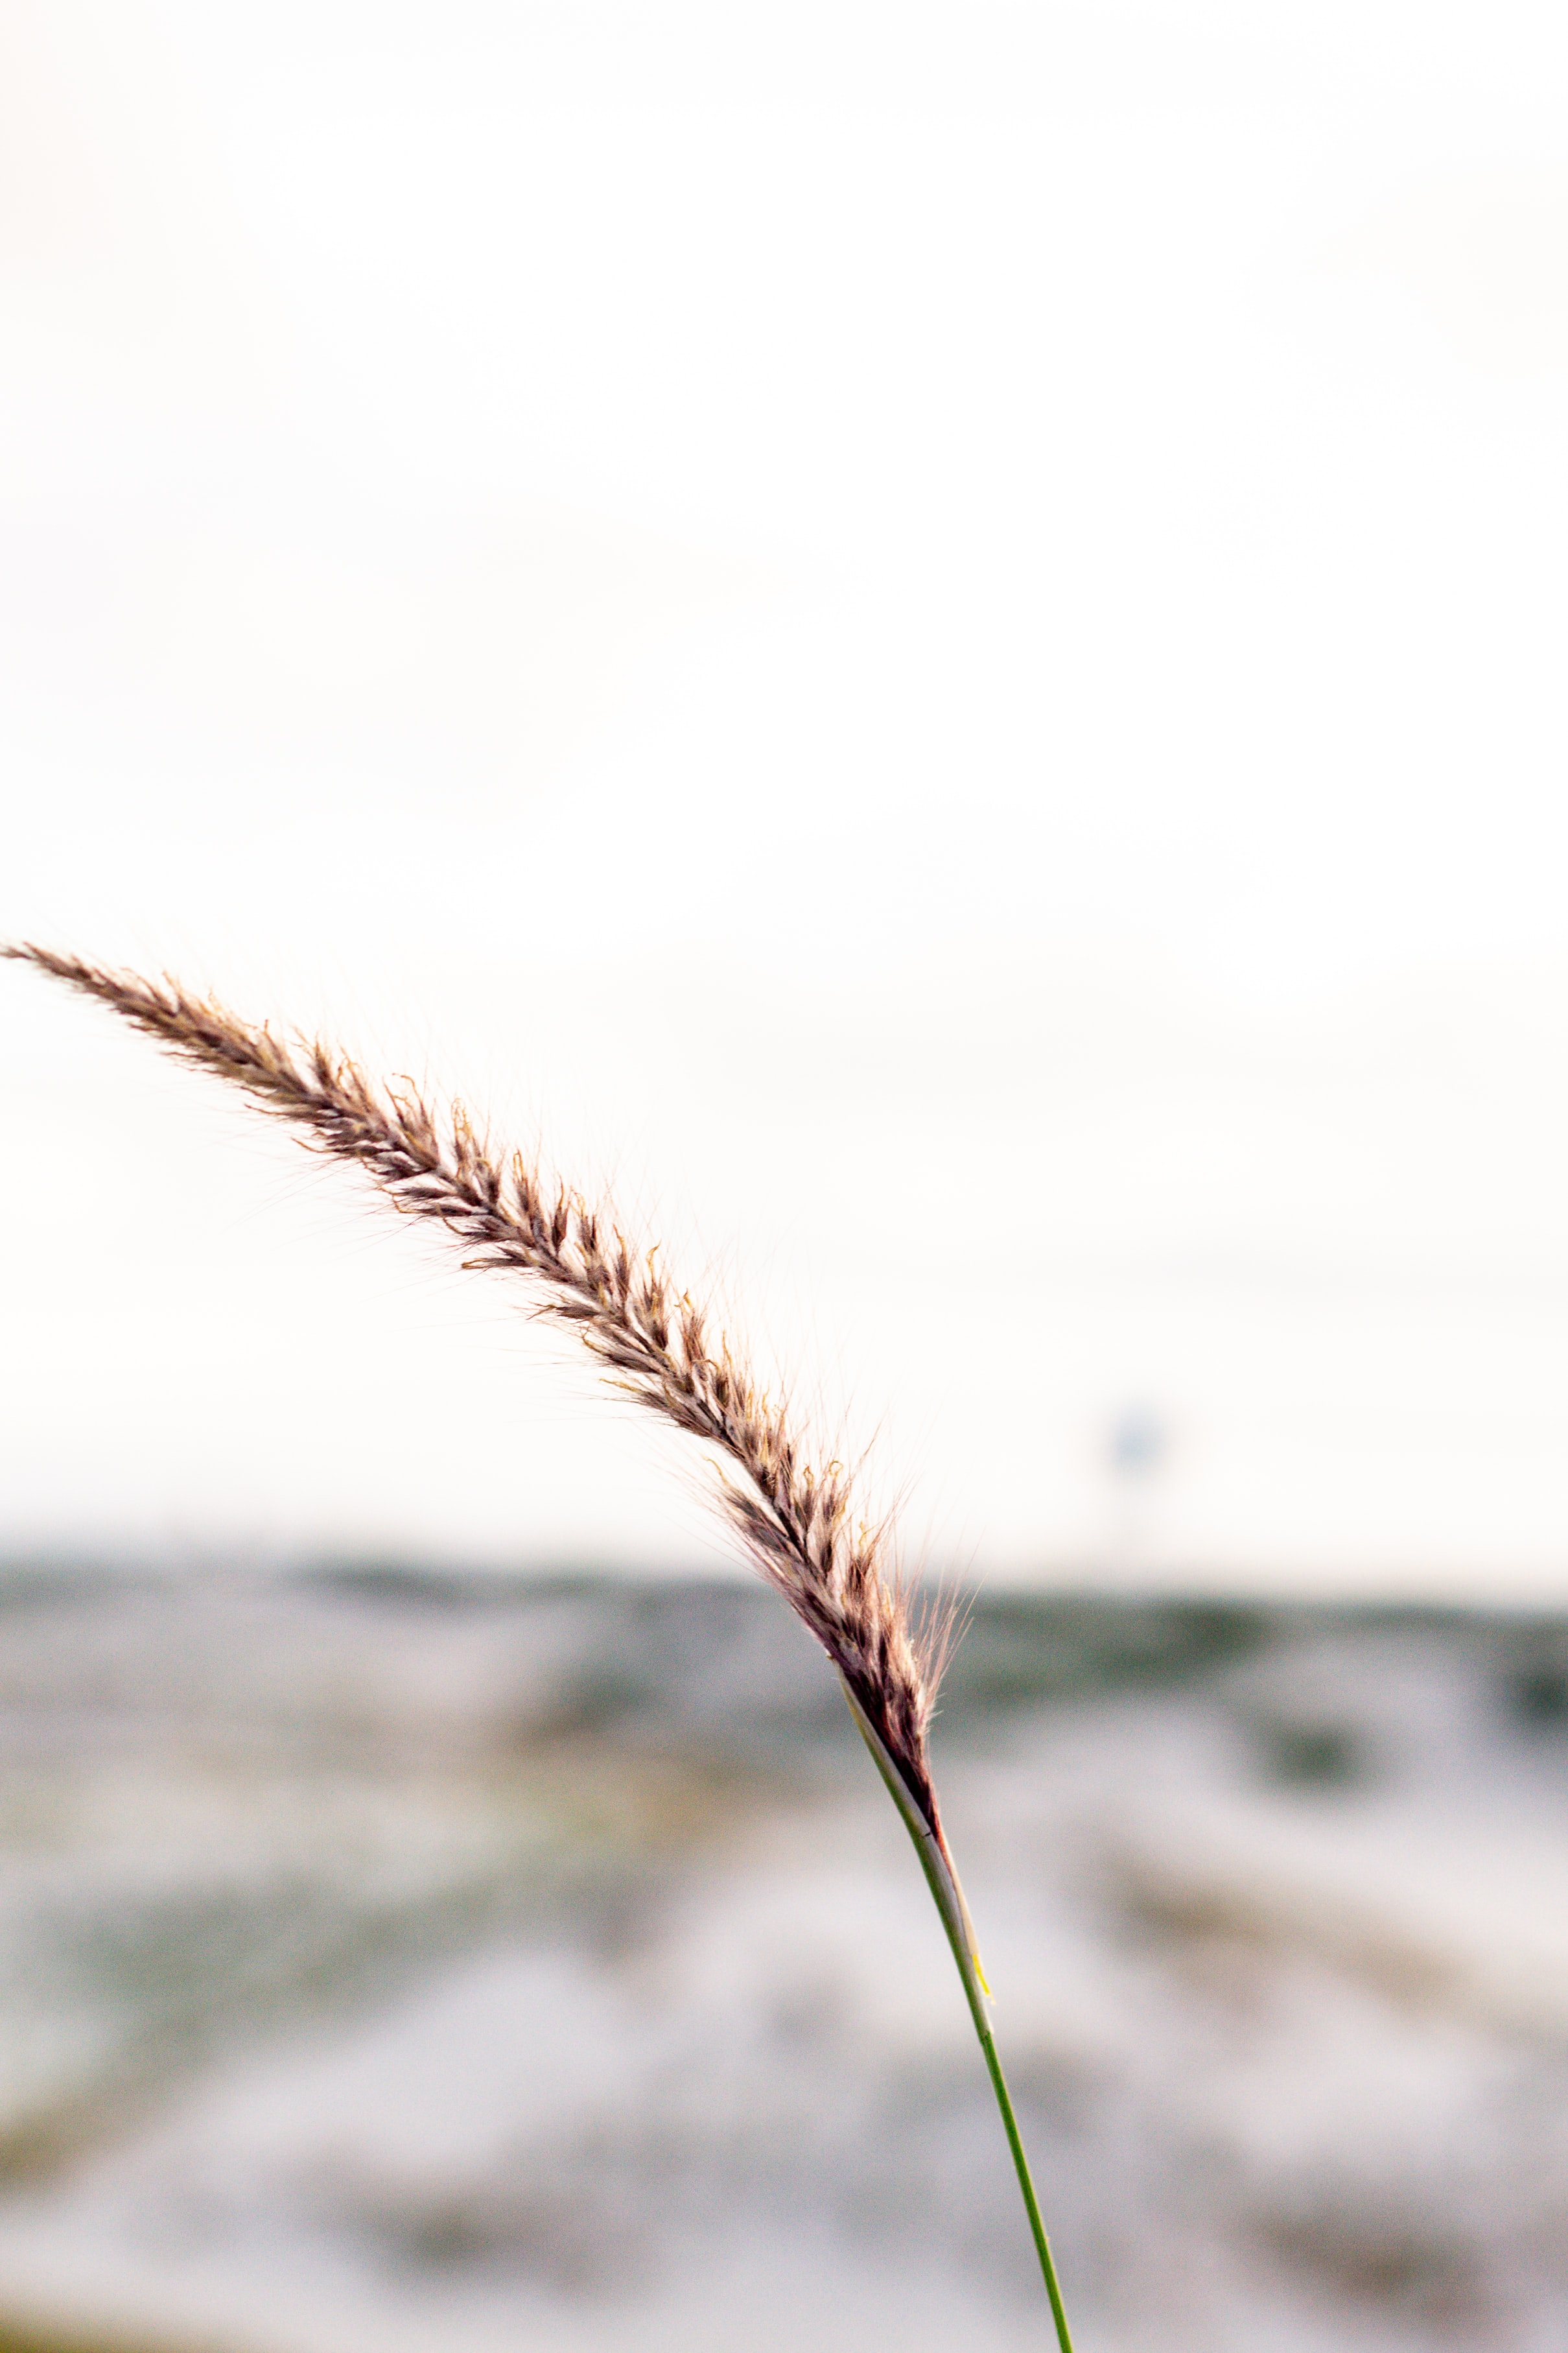 brown wheat in close-up photography during daytime